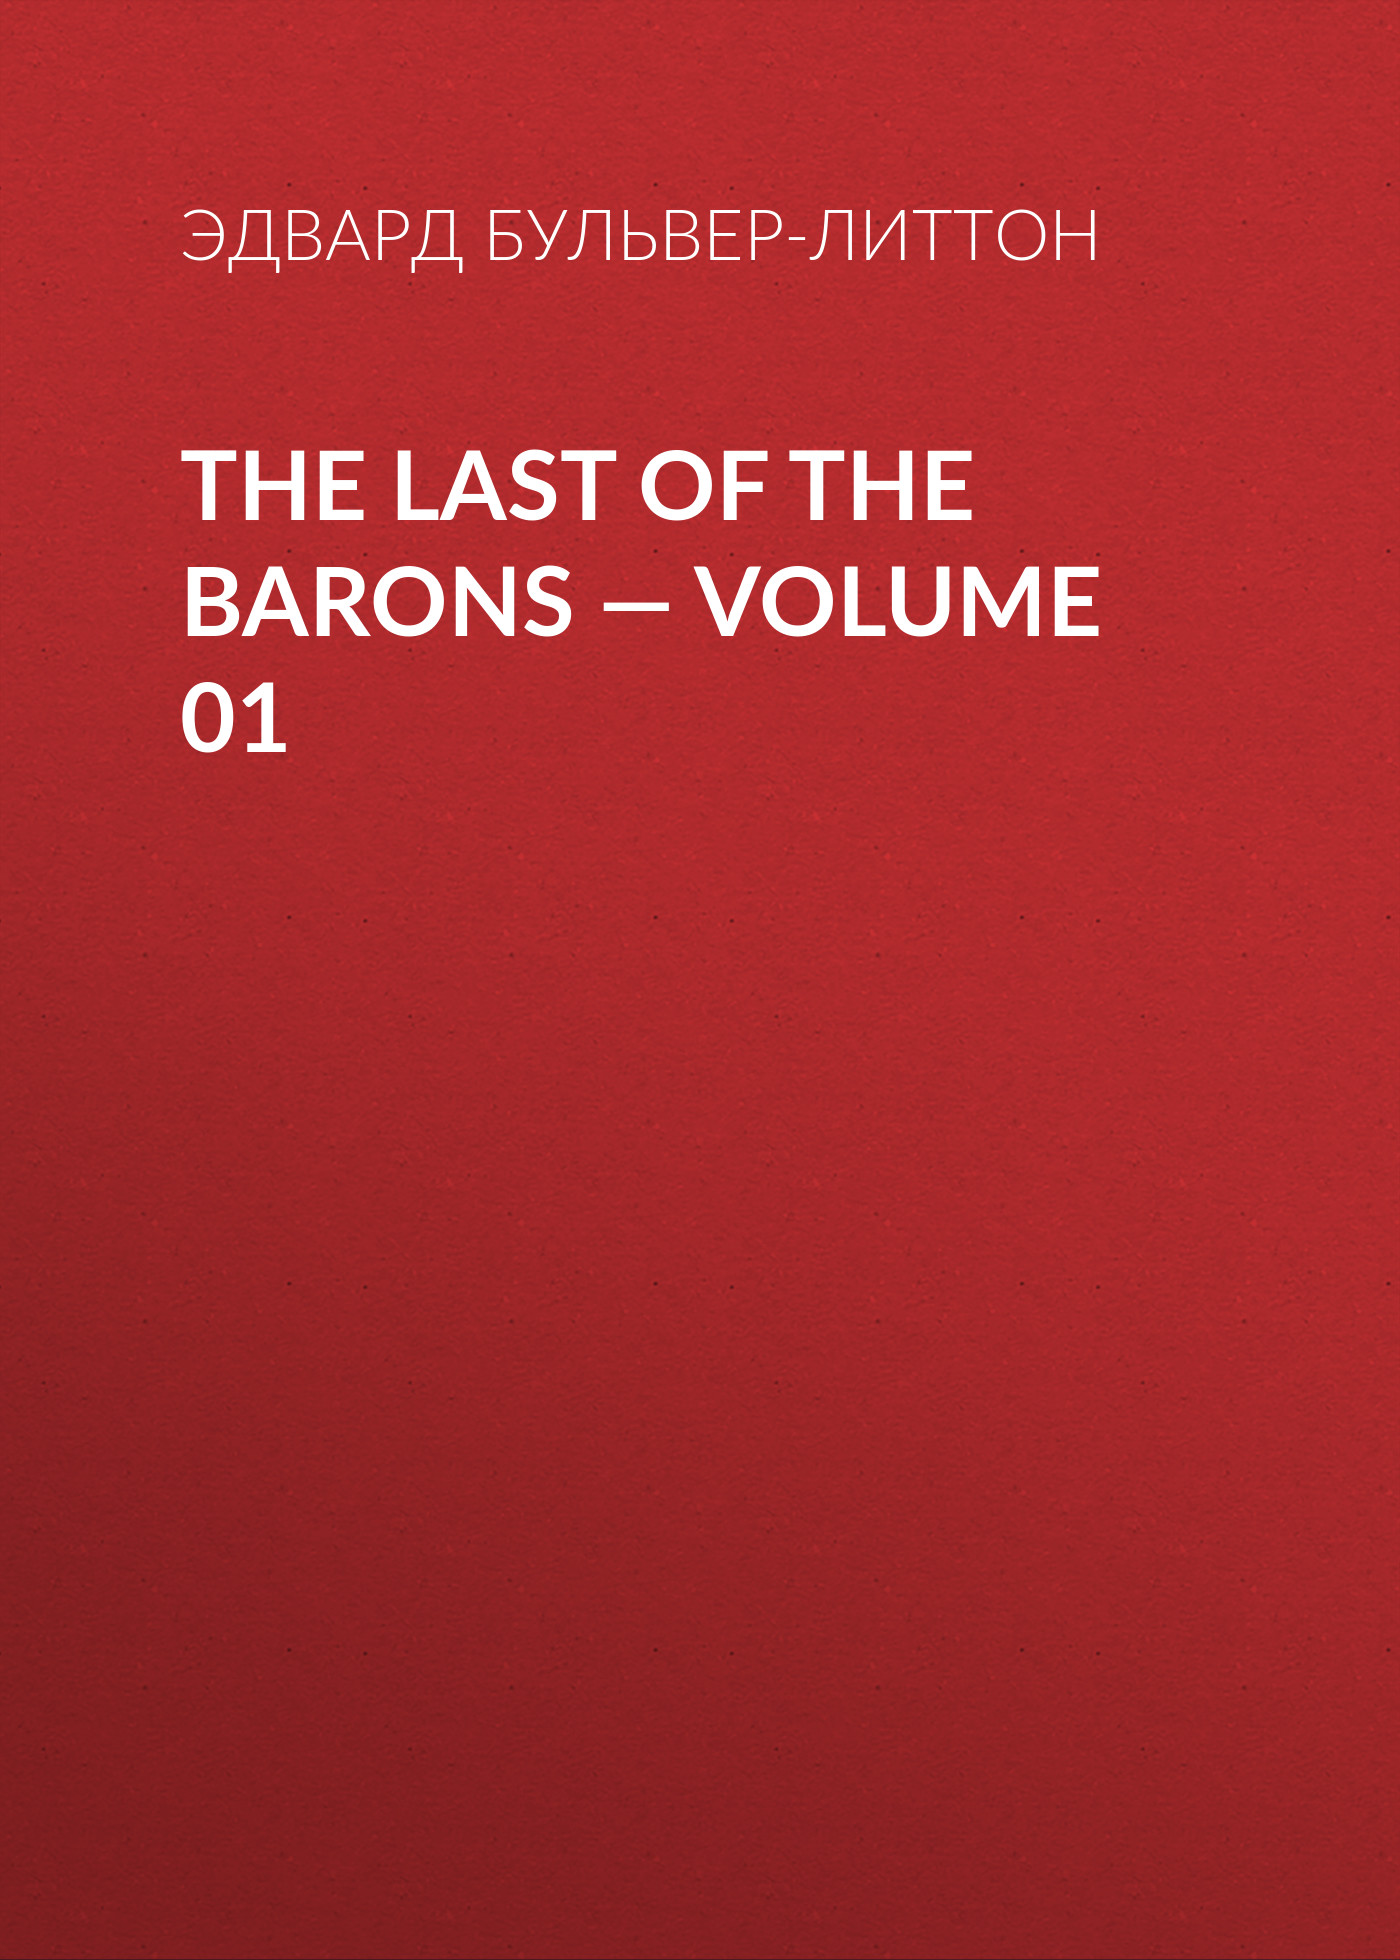 Эдвард Бульвер-Литтон The Last of the Barons — Volume 01 fayrene preston the barons of texas tess